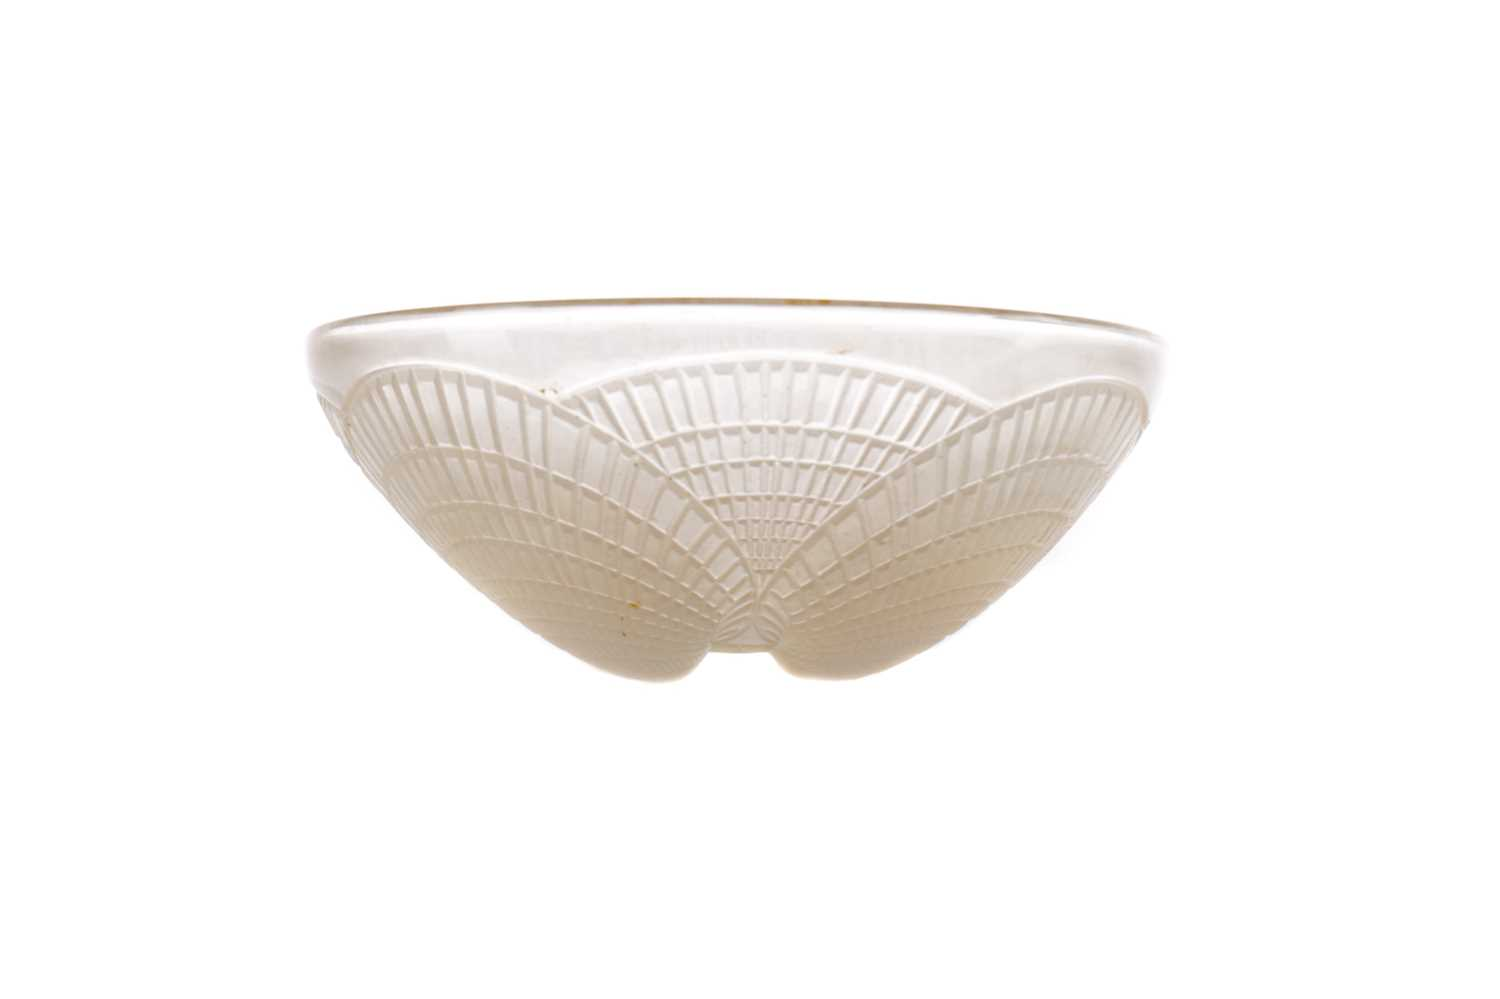 Lot 1067 - A LALIQUE 'COQUILLES' PATTERN OPALESCENT GLASS BOWL